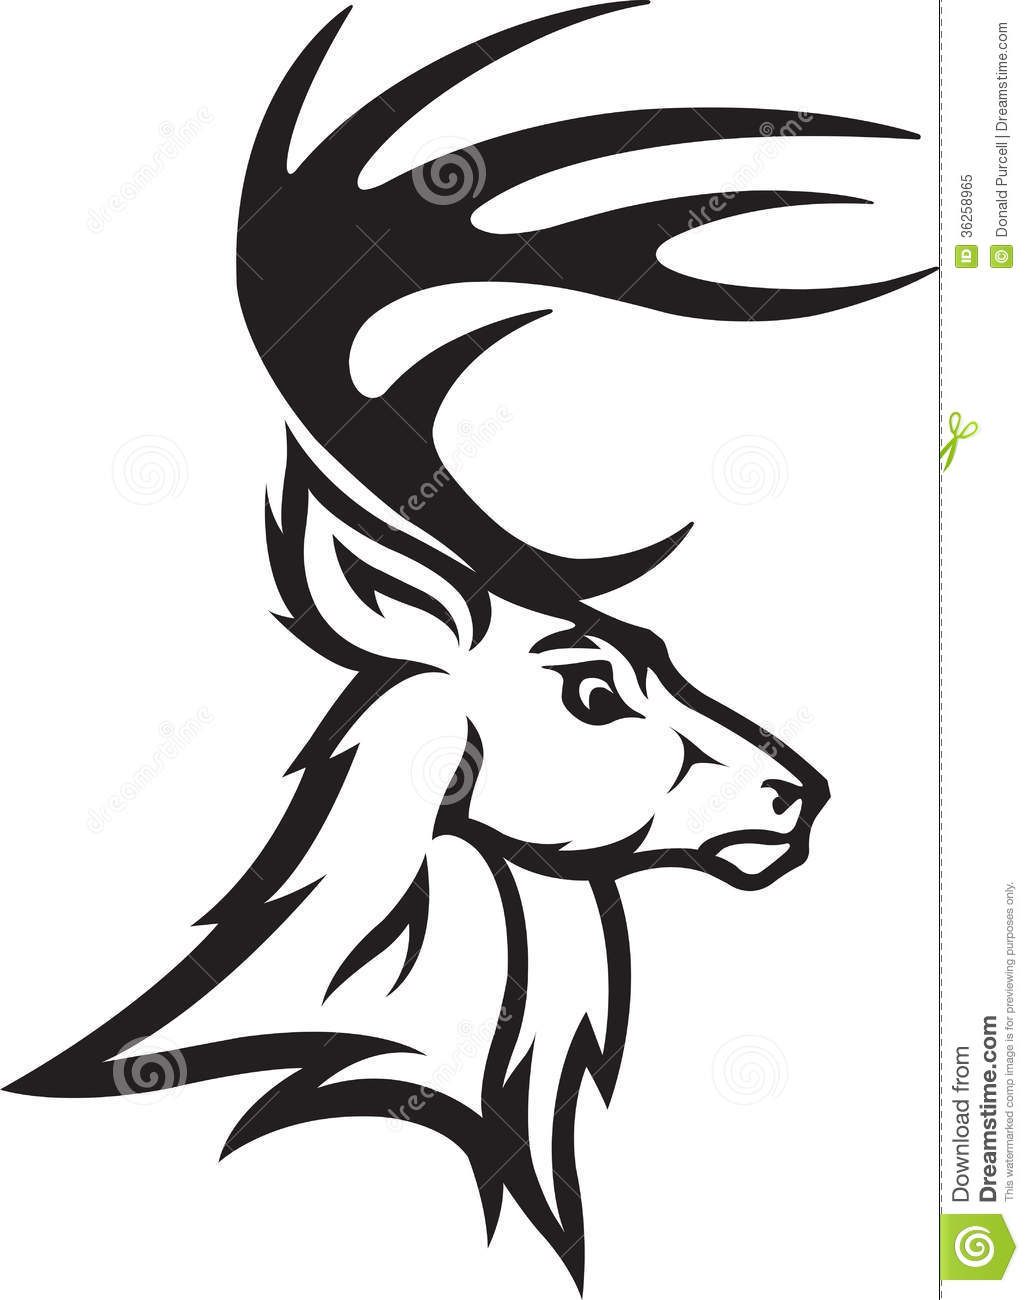 Deer Black And White Clipart - Clipart Kid